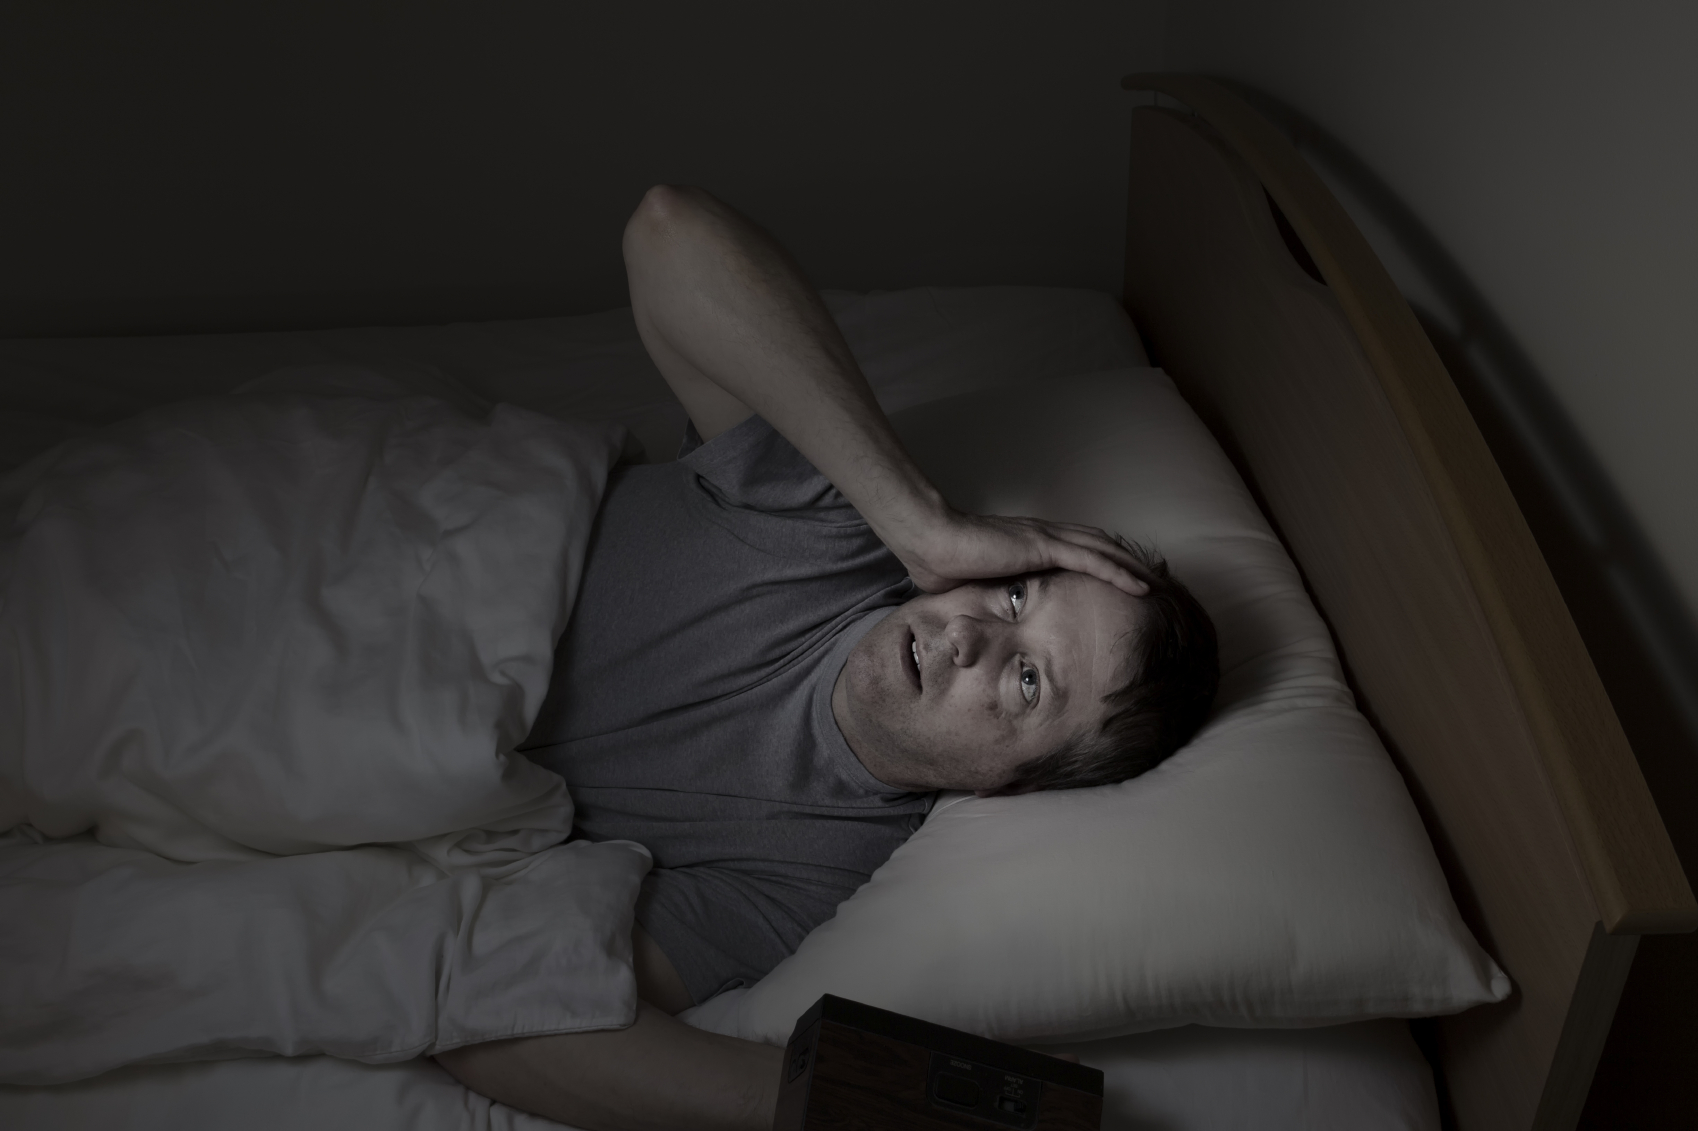 Not getting enough sleep will do more than make you slow the next day. Every half hour you miss makes you 39% more likely to face this dangerous health threat.